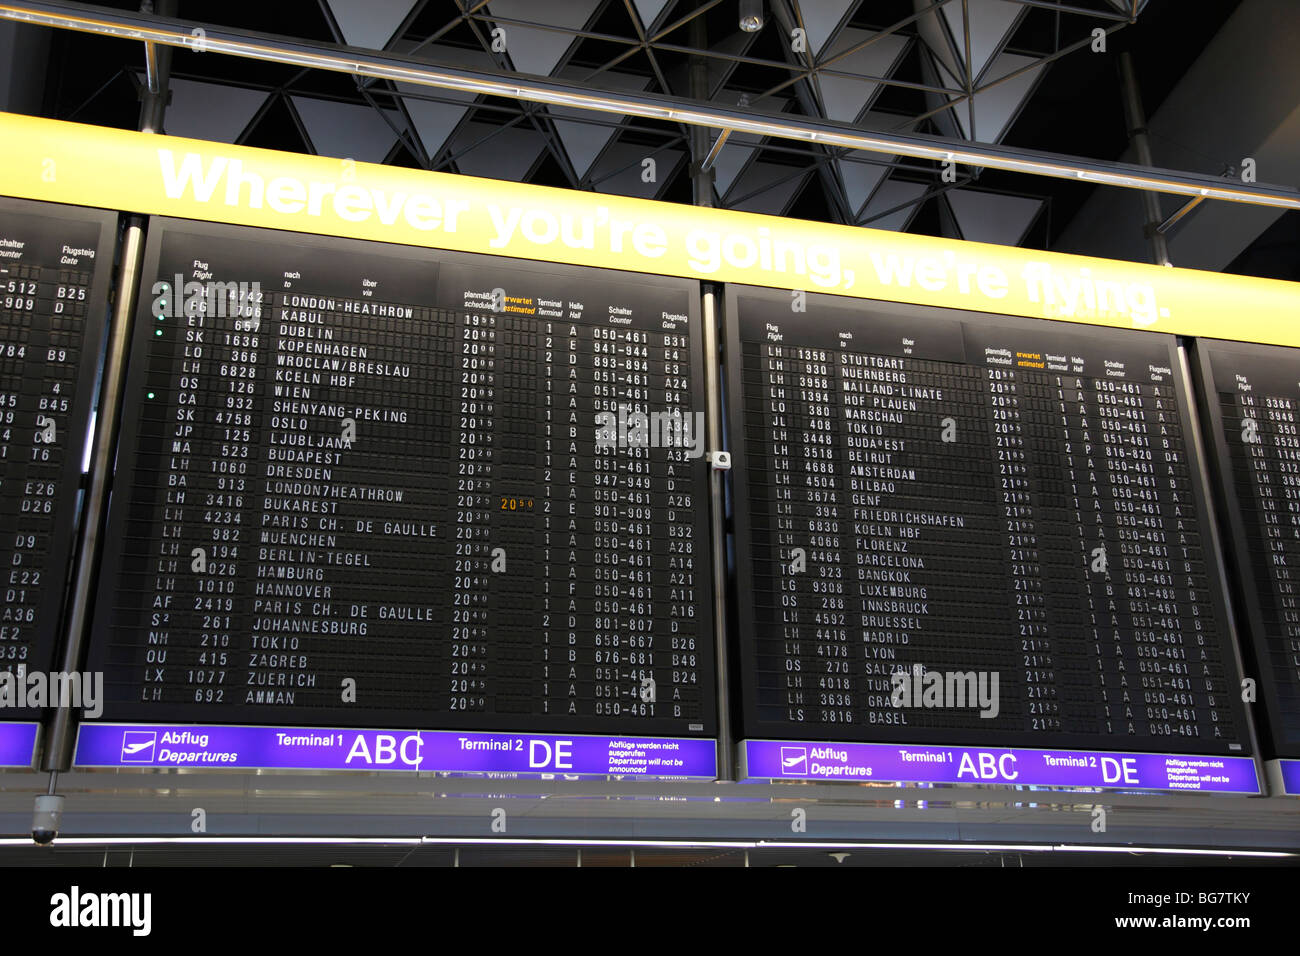 Airport Destination Board High Resolution Stock Photography And Images Alamy